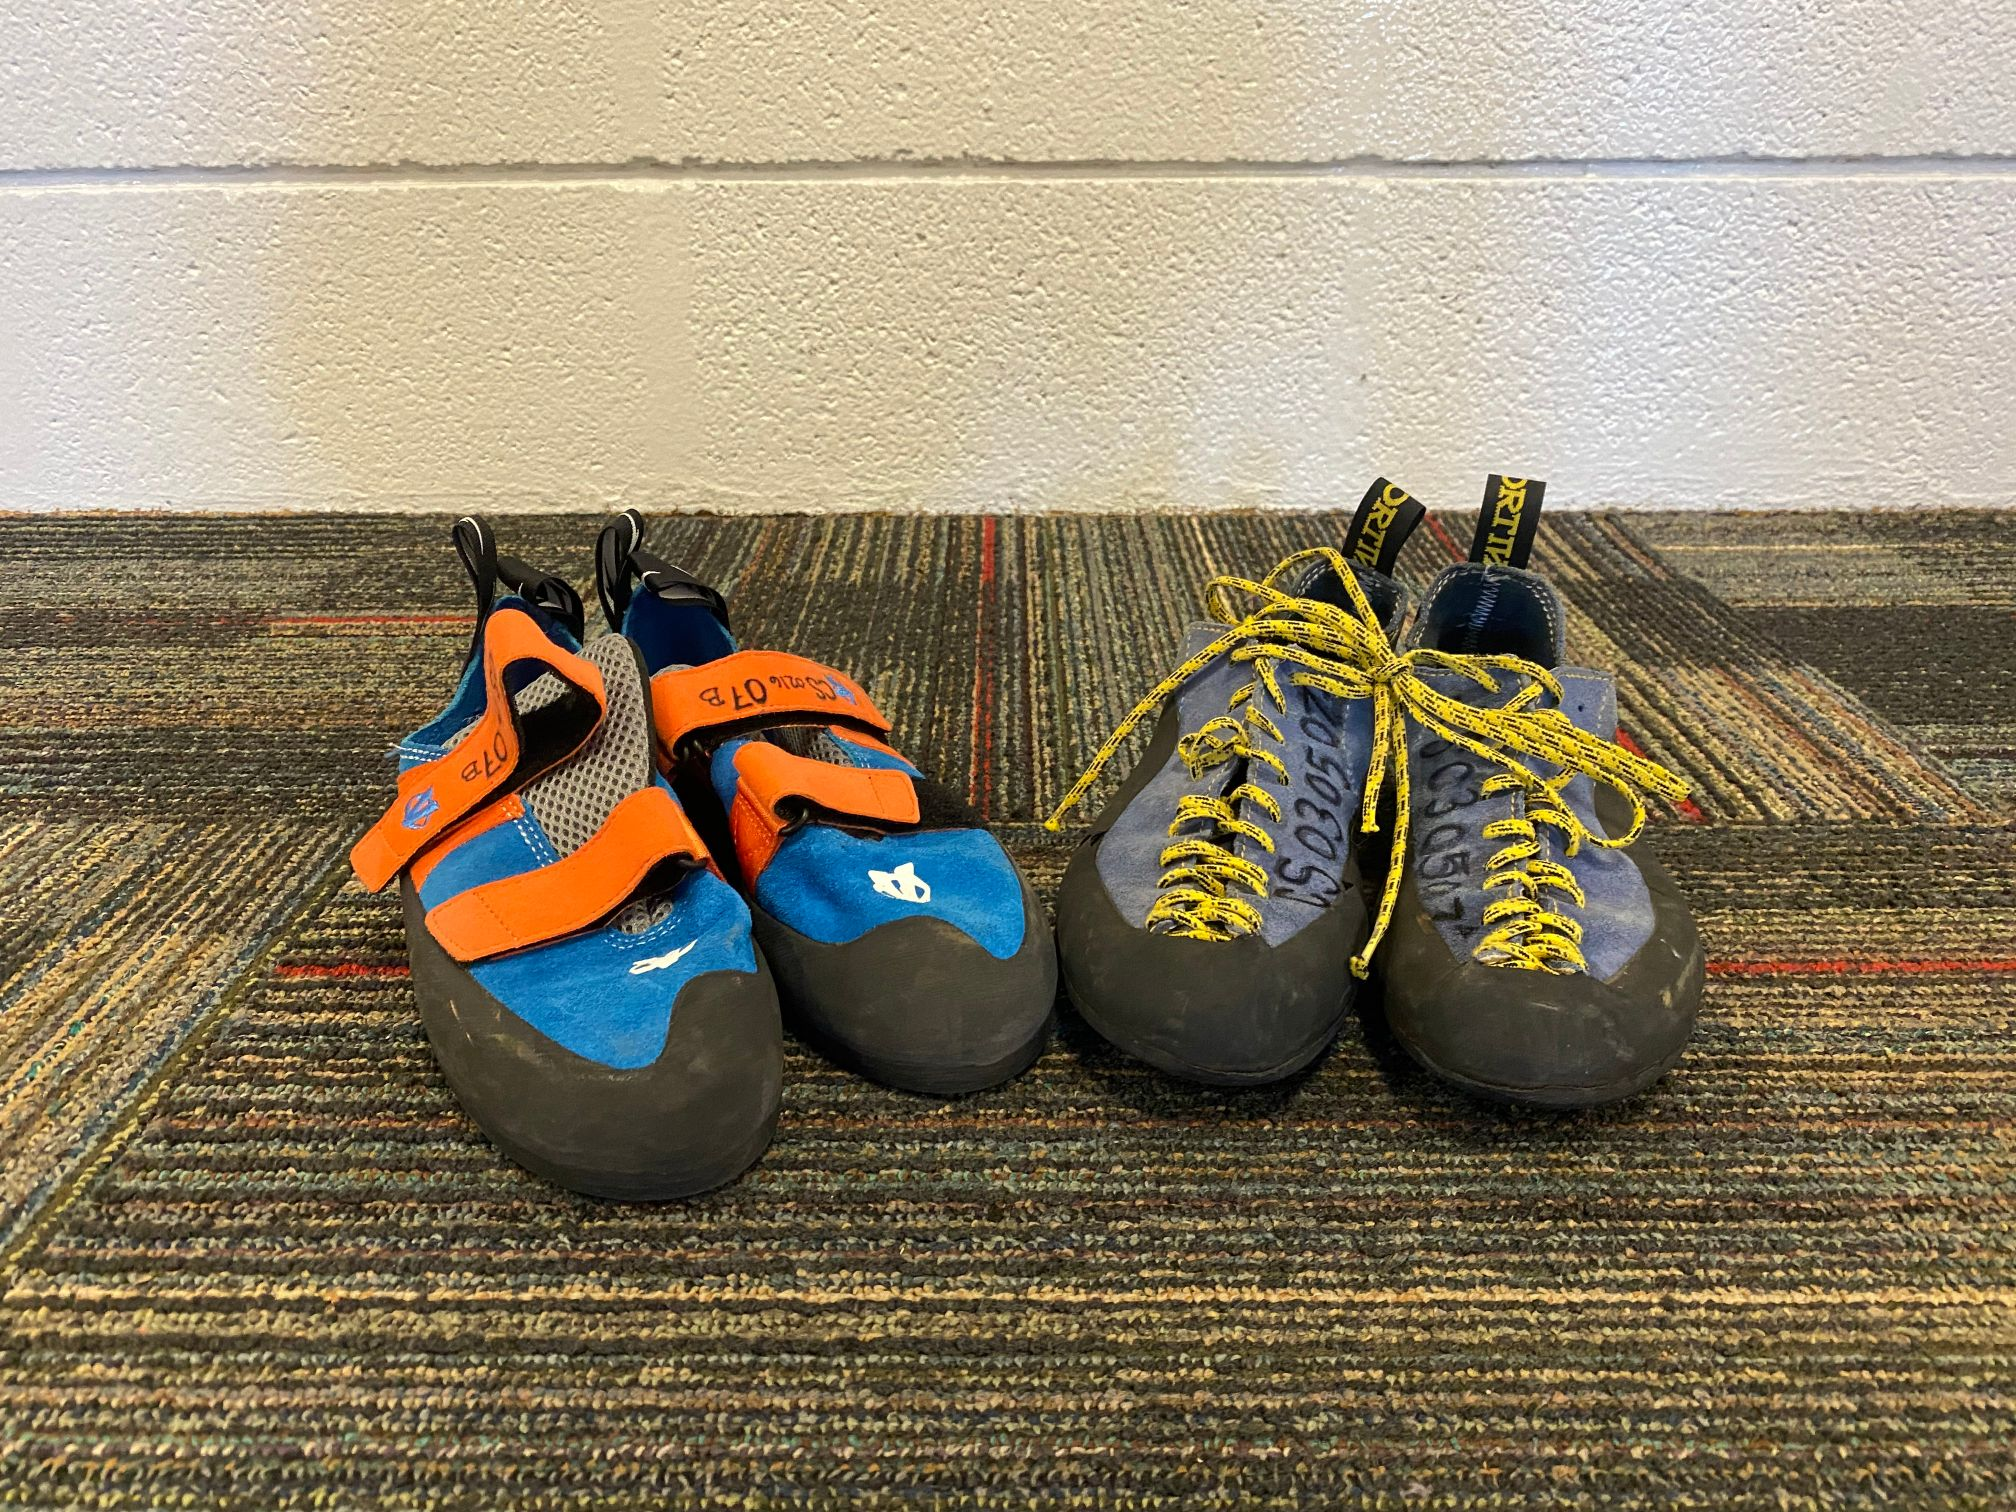 climbingshoes_rental